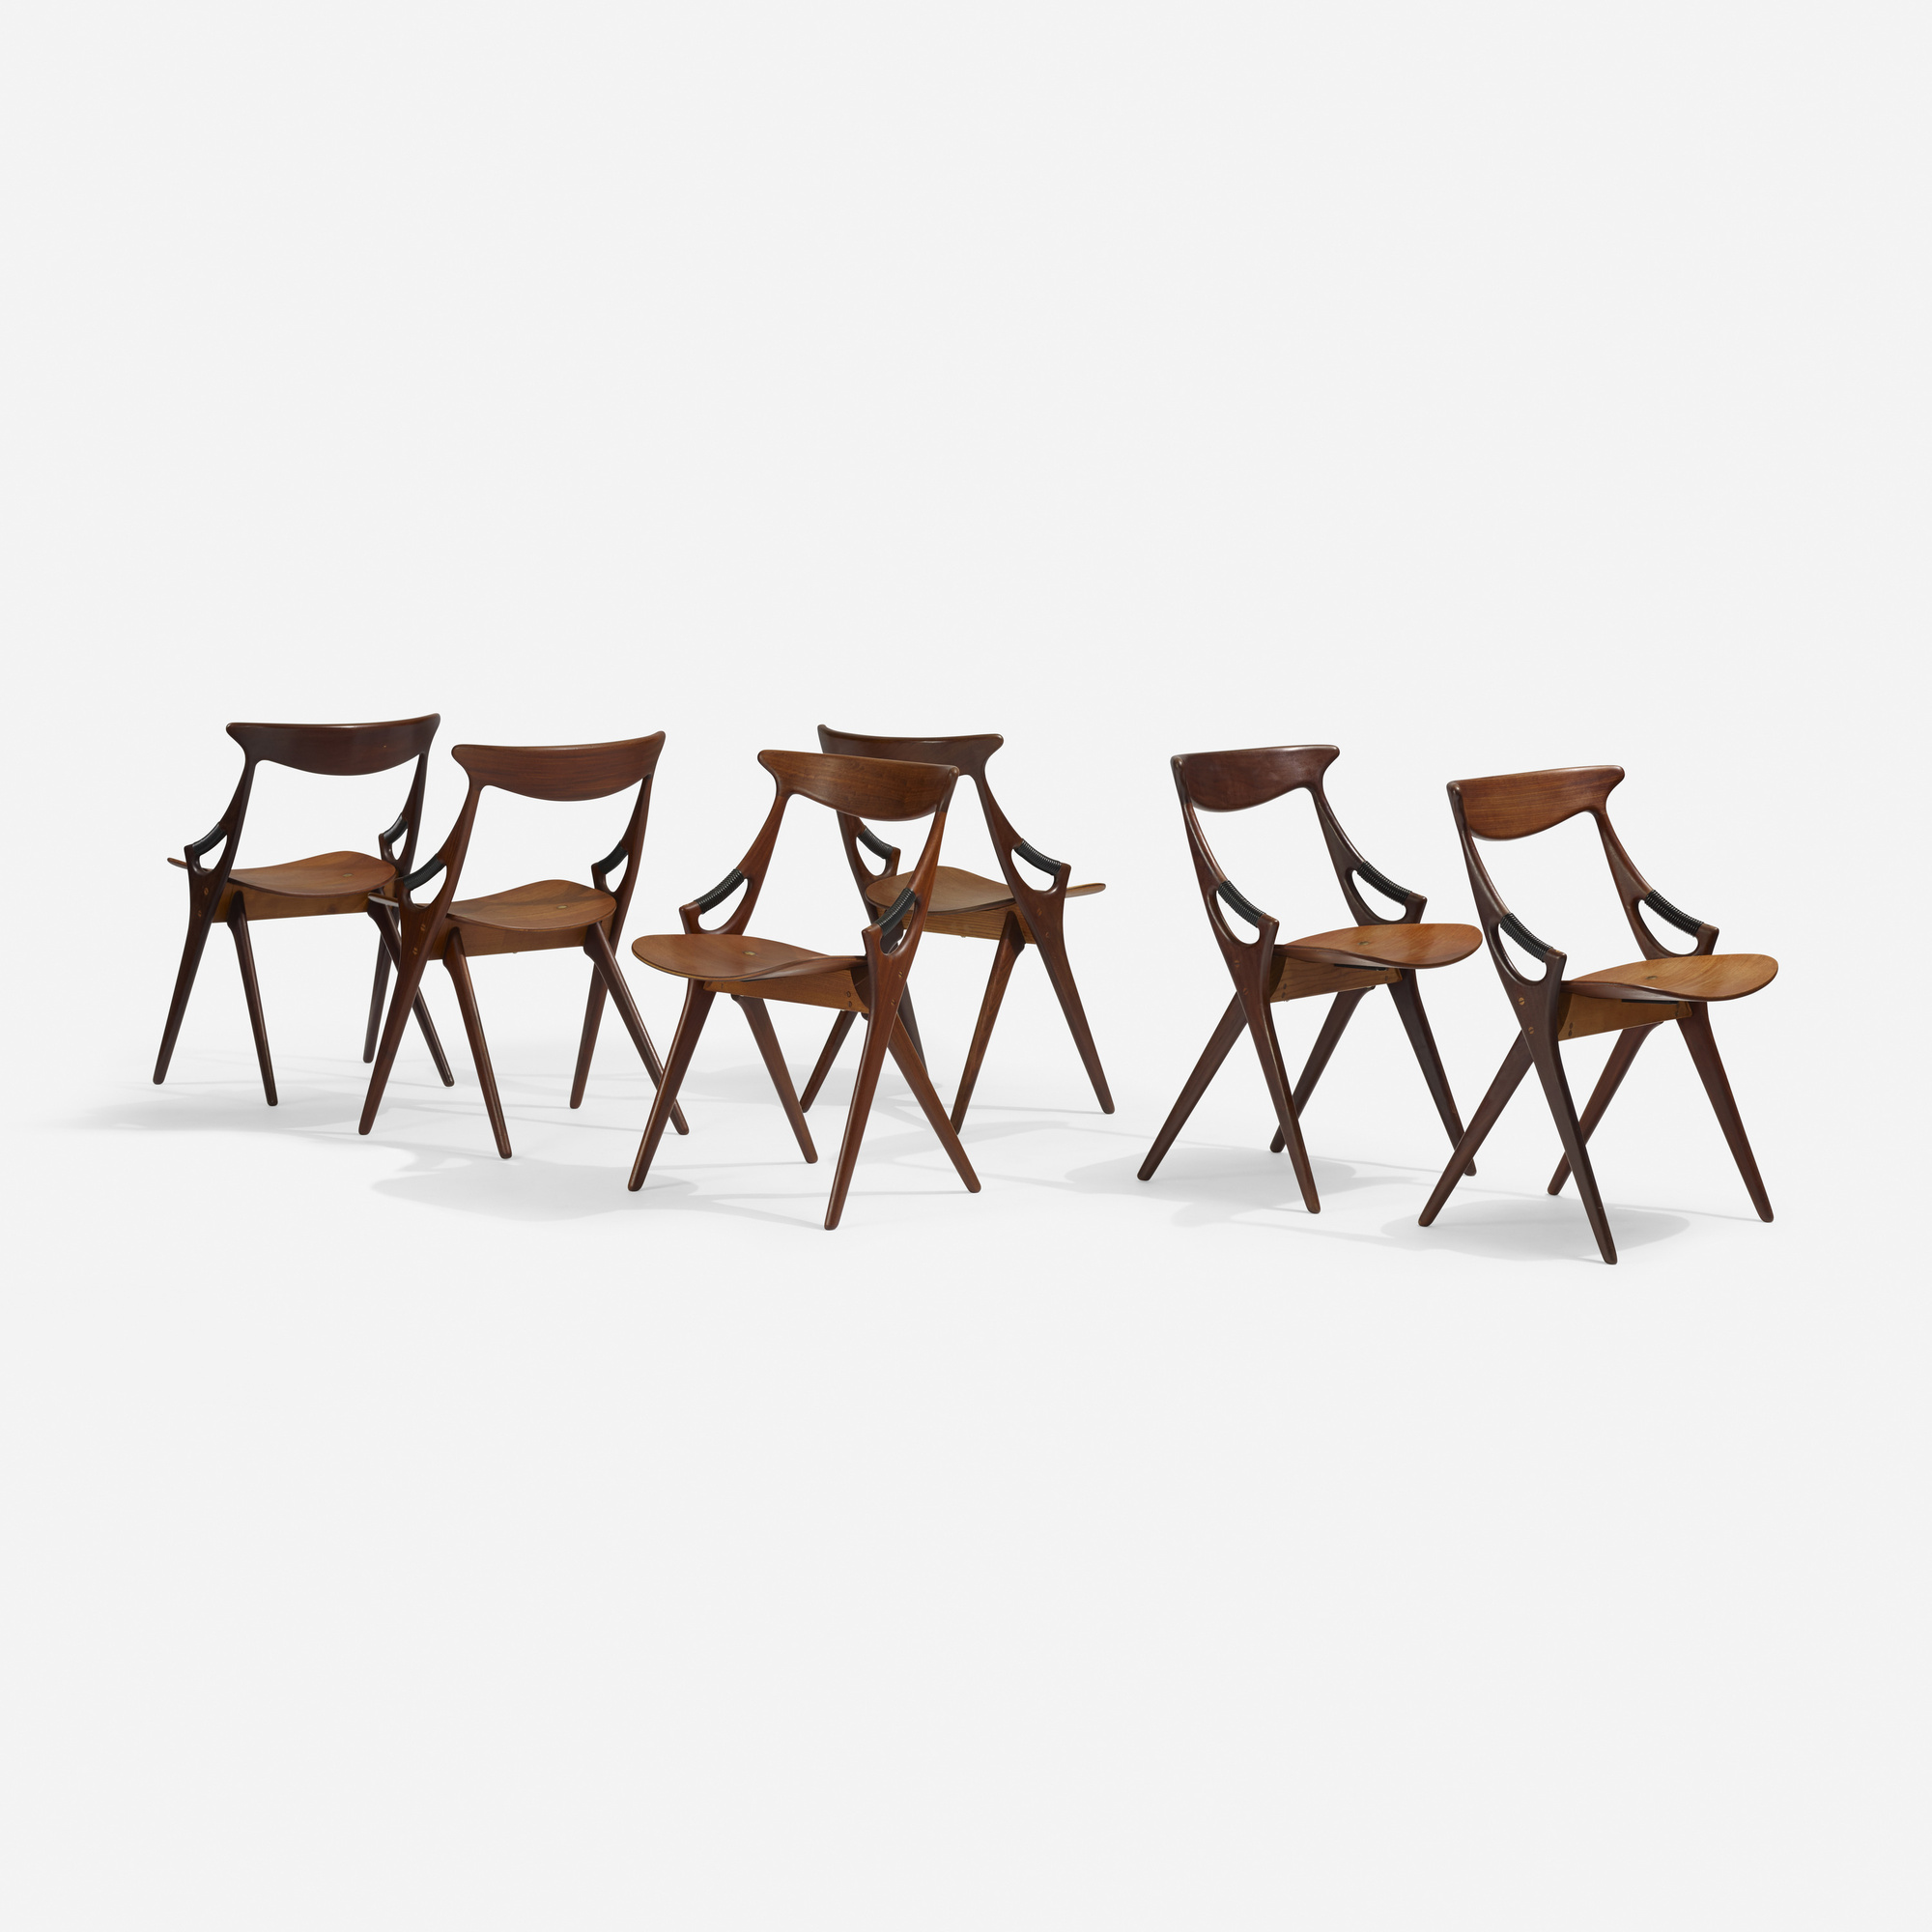 325: Arne Hovmand-Olsen / dining chairs model 71, set of six (1 of 2)